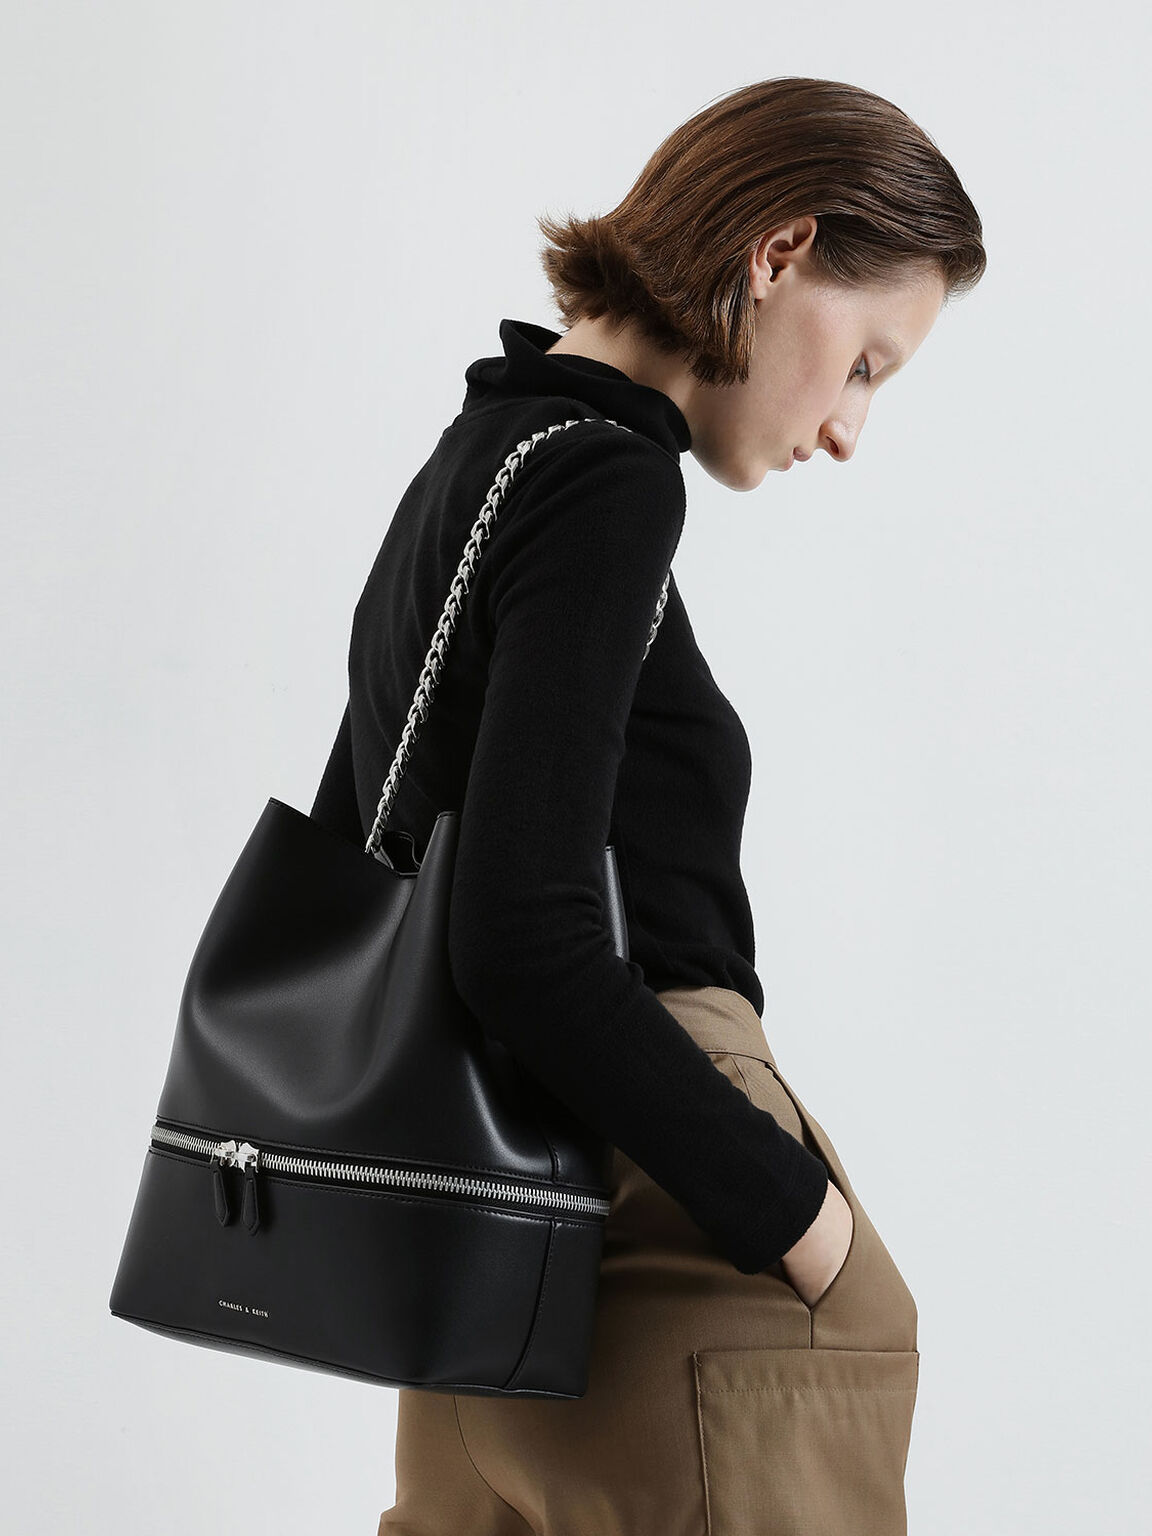 Two-Way Zip Hobo Bag, Black, hi-res